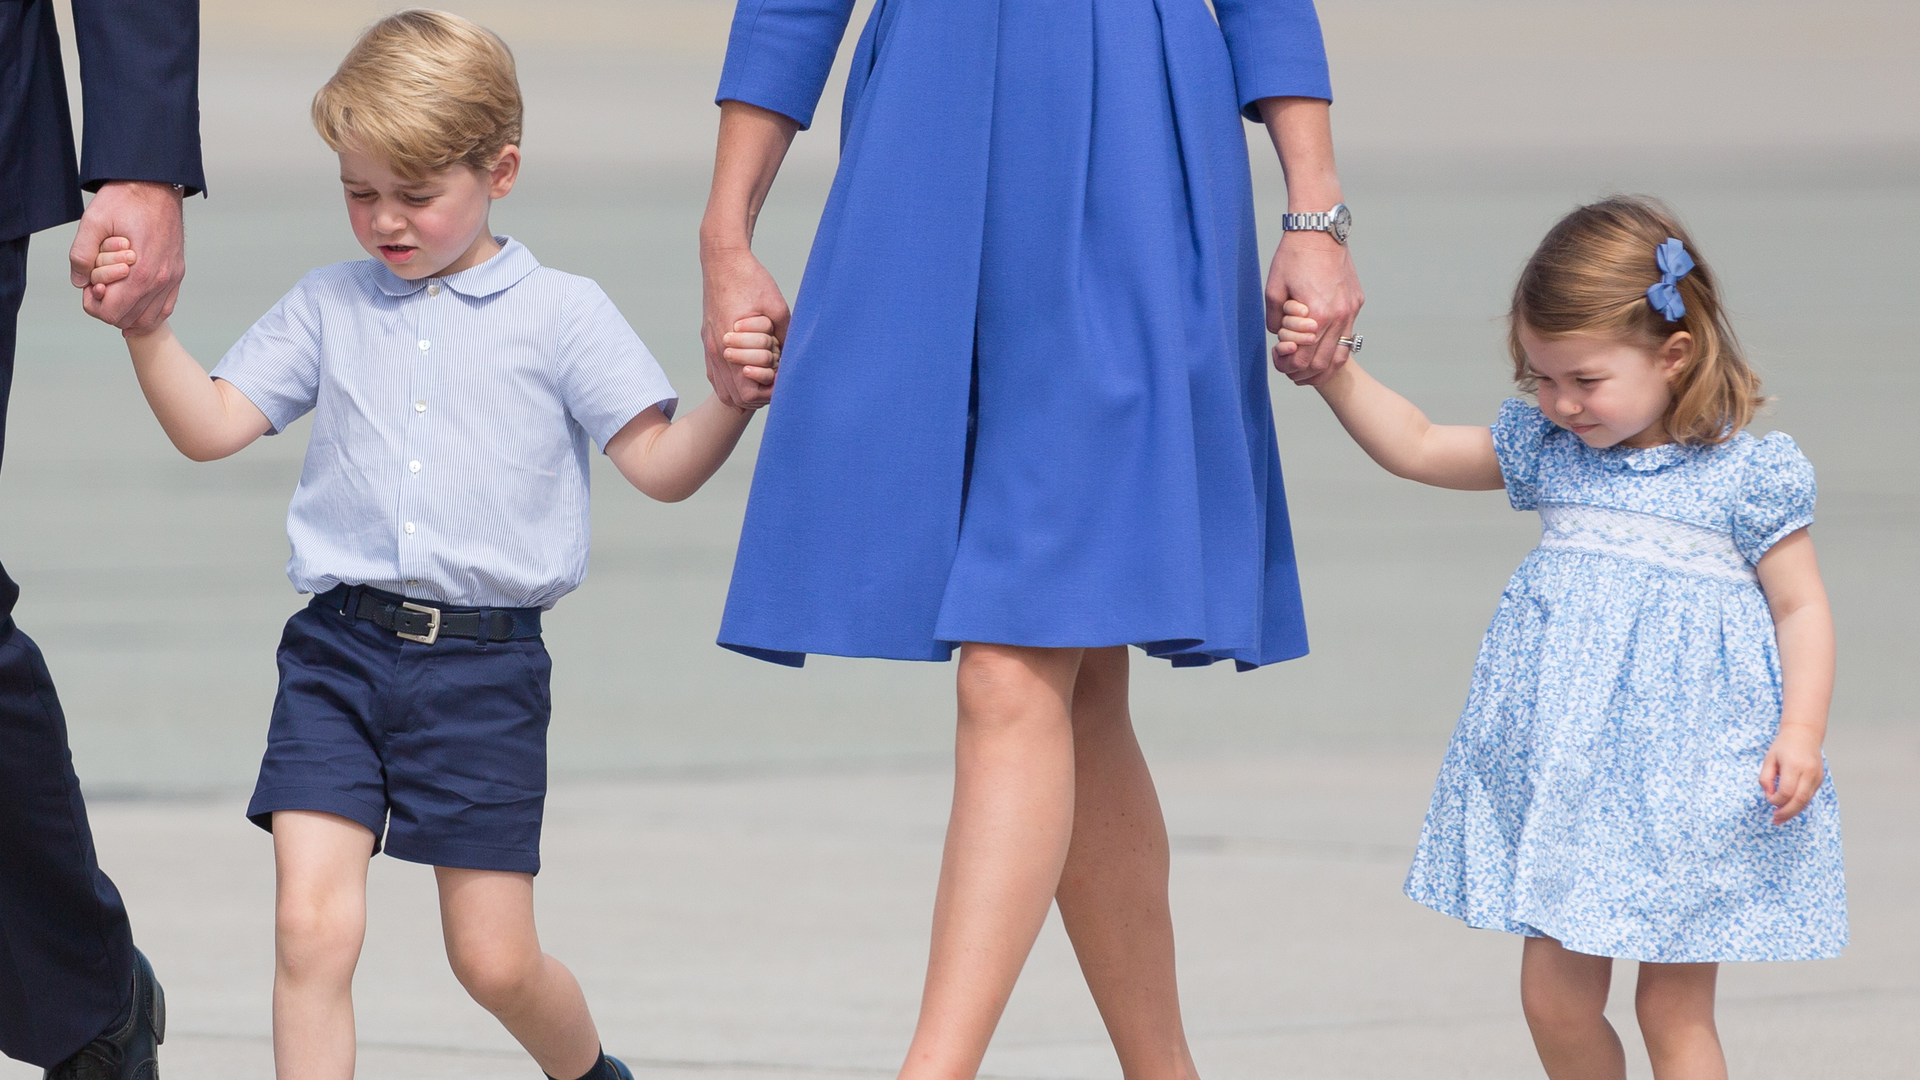 4 Things You Didn't Know About Being a Royal Heir